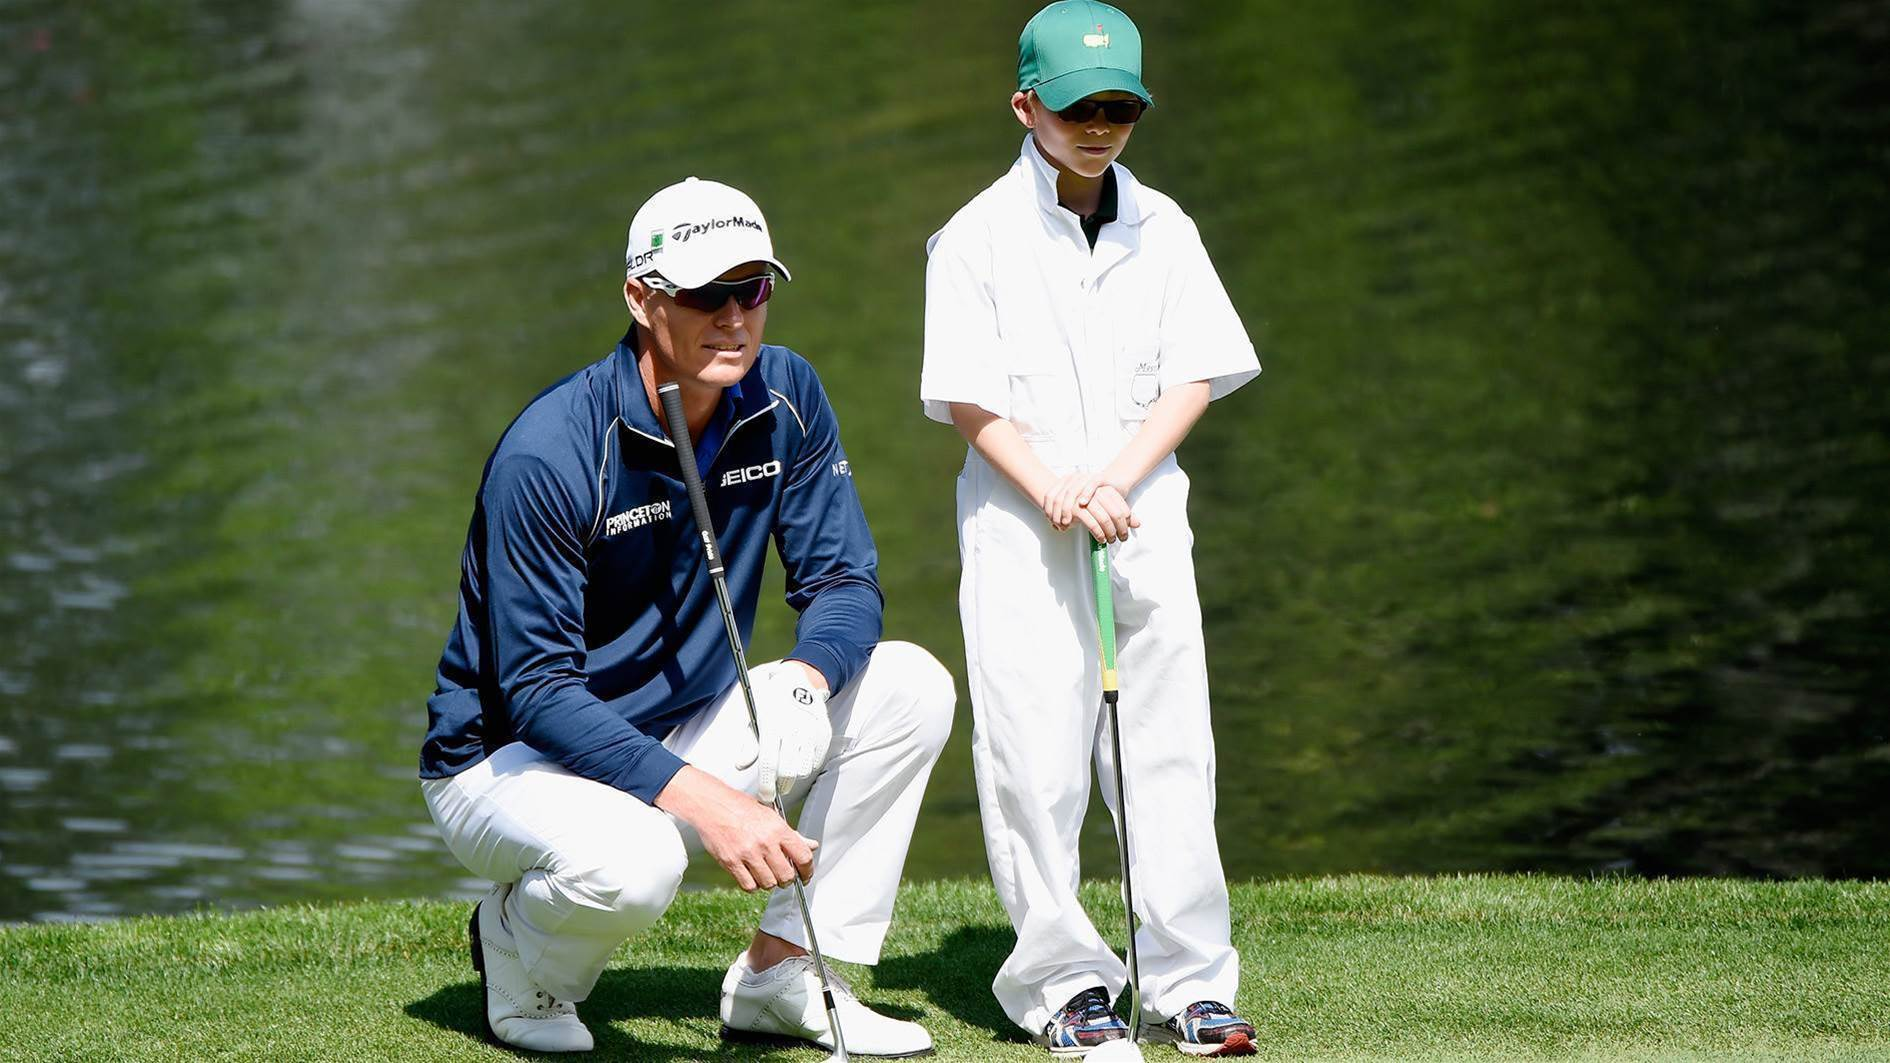 PGA TOUR: Senden takes indefinite leave to be with ill son